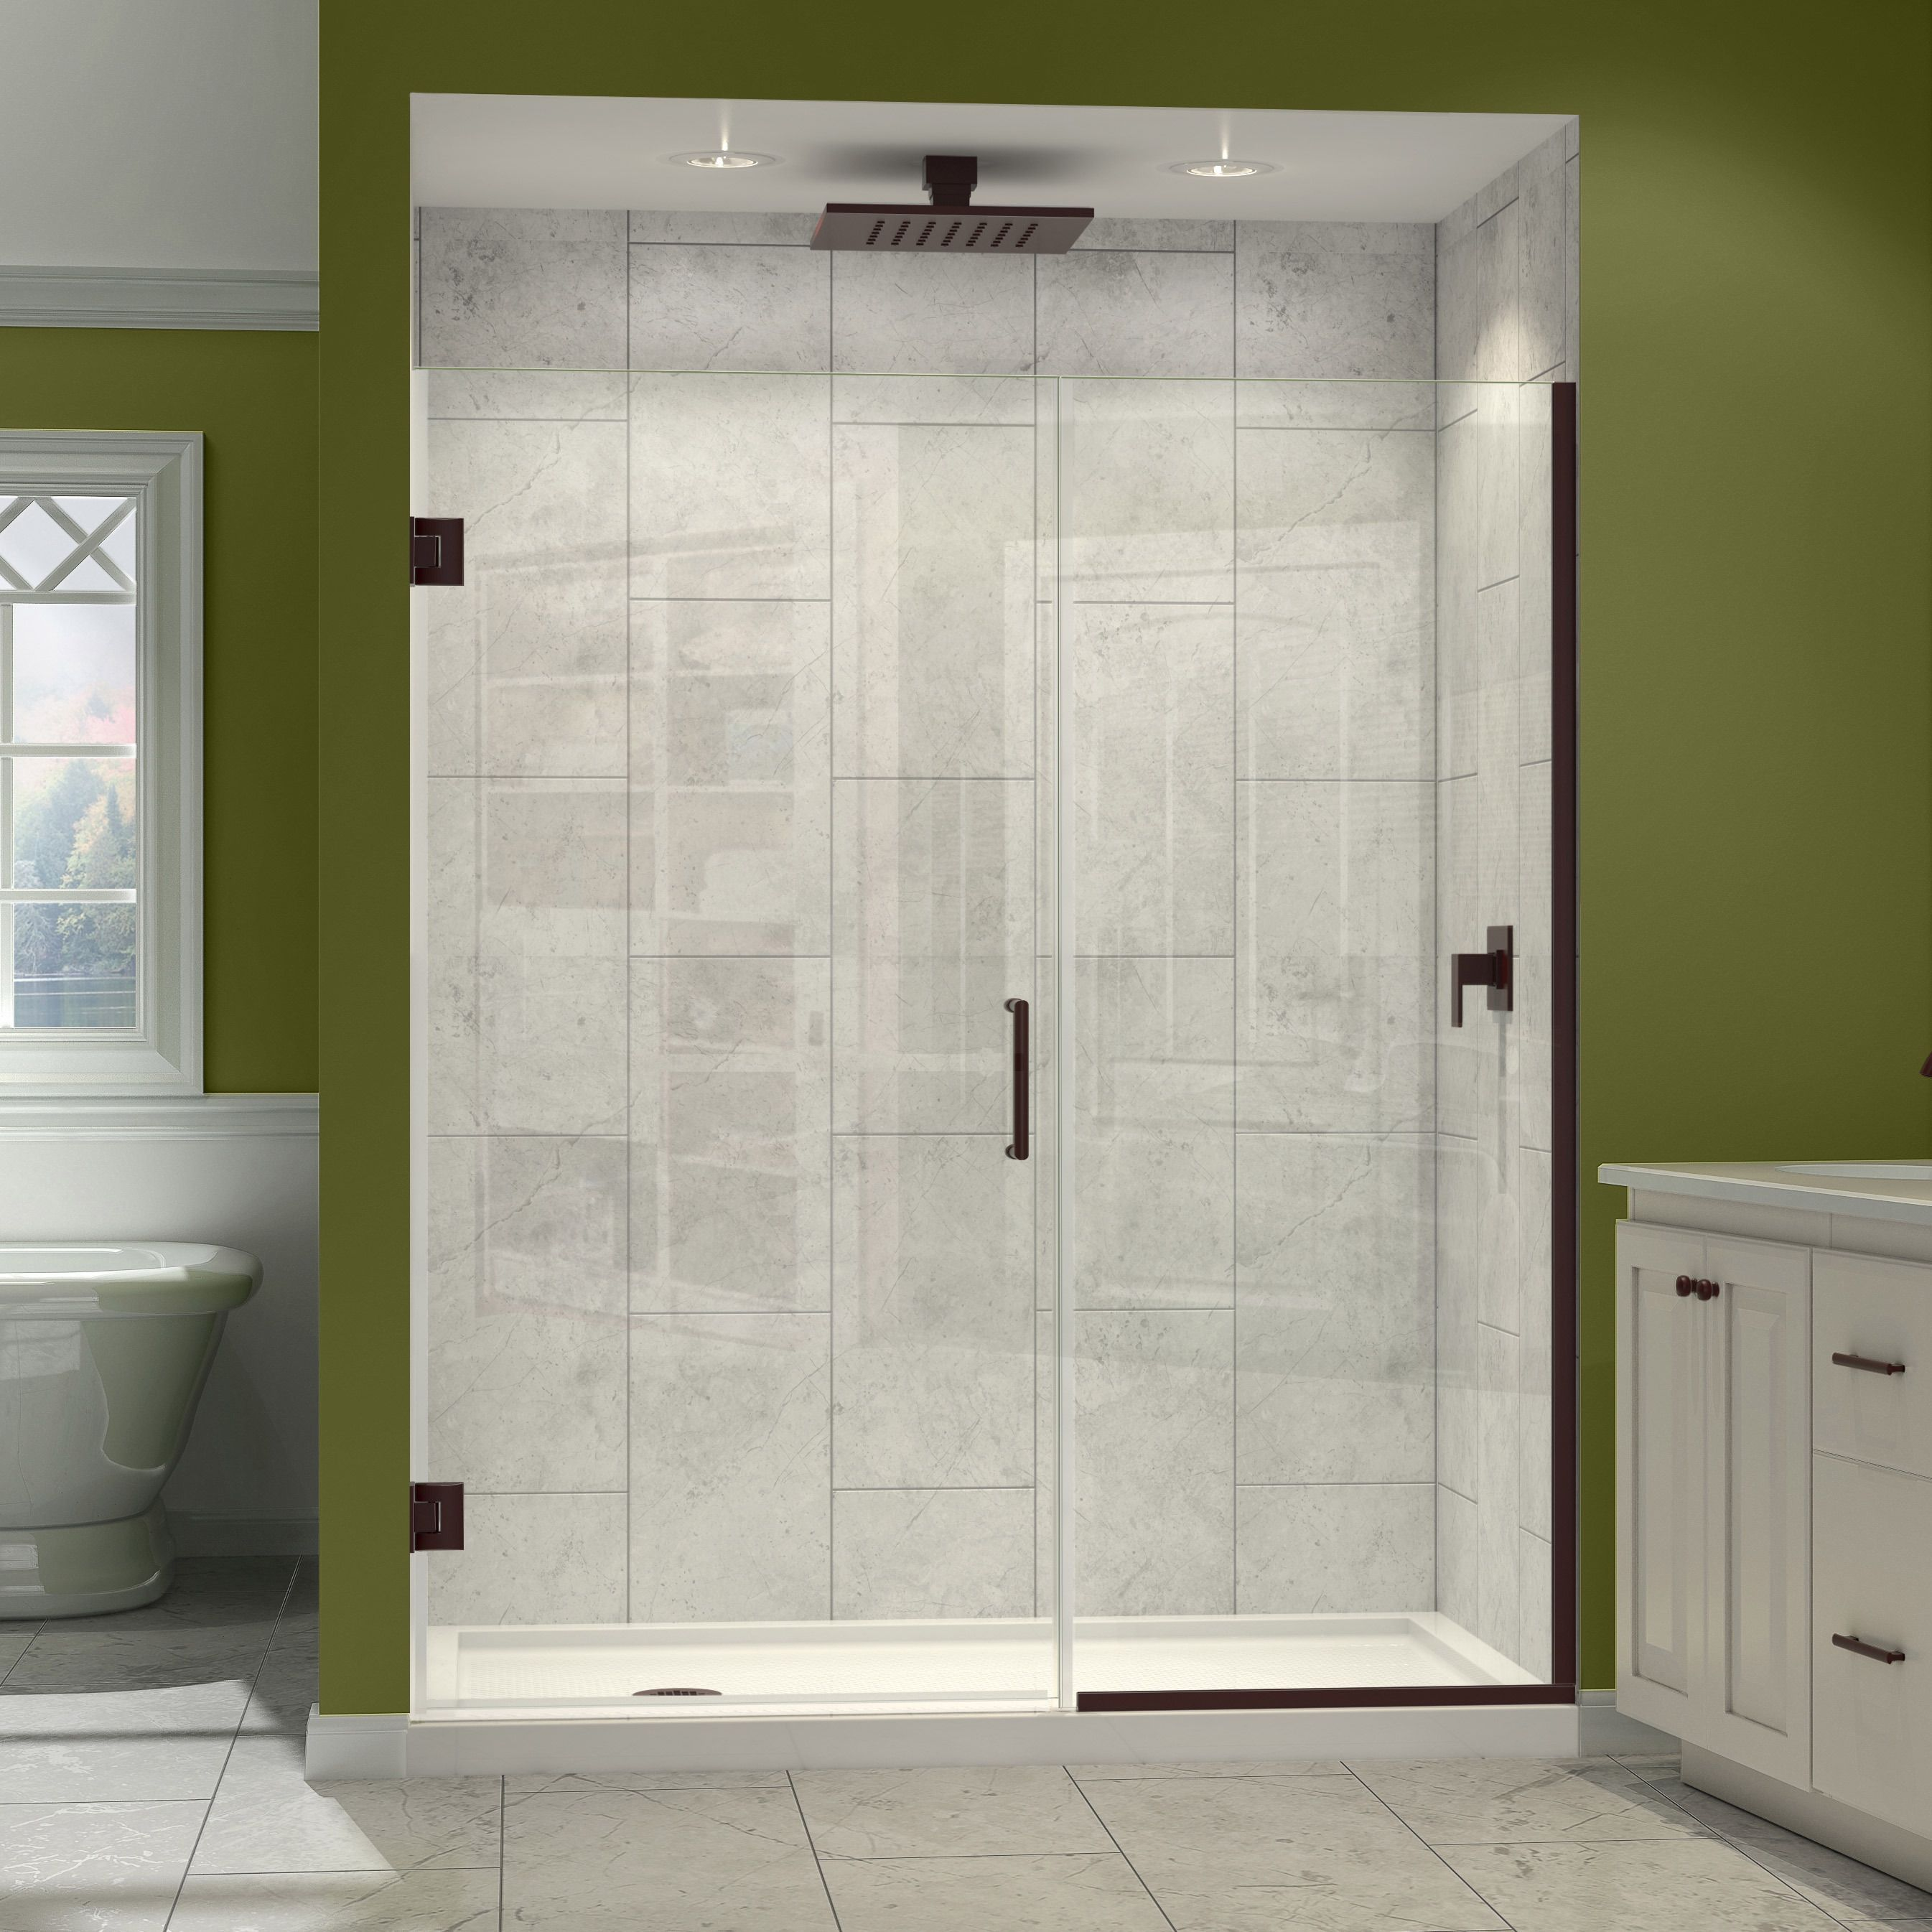 DreamLine Unidoor Plus Min 45 in. to Max 45.5 in. W x 72 in. H ...